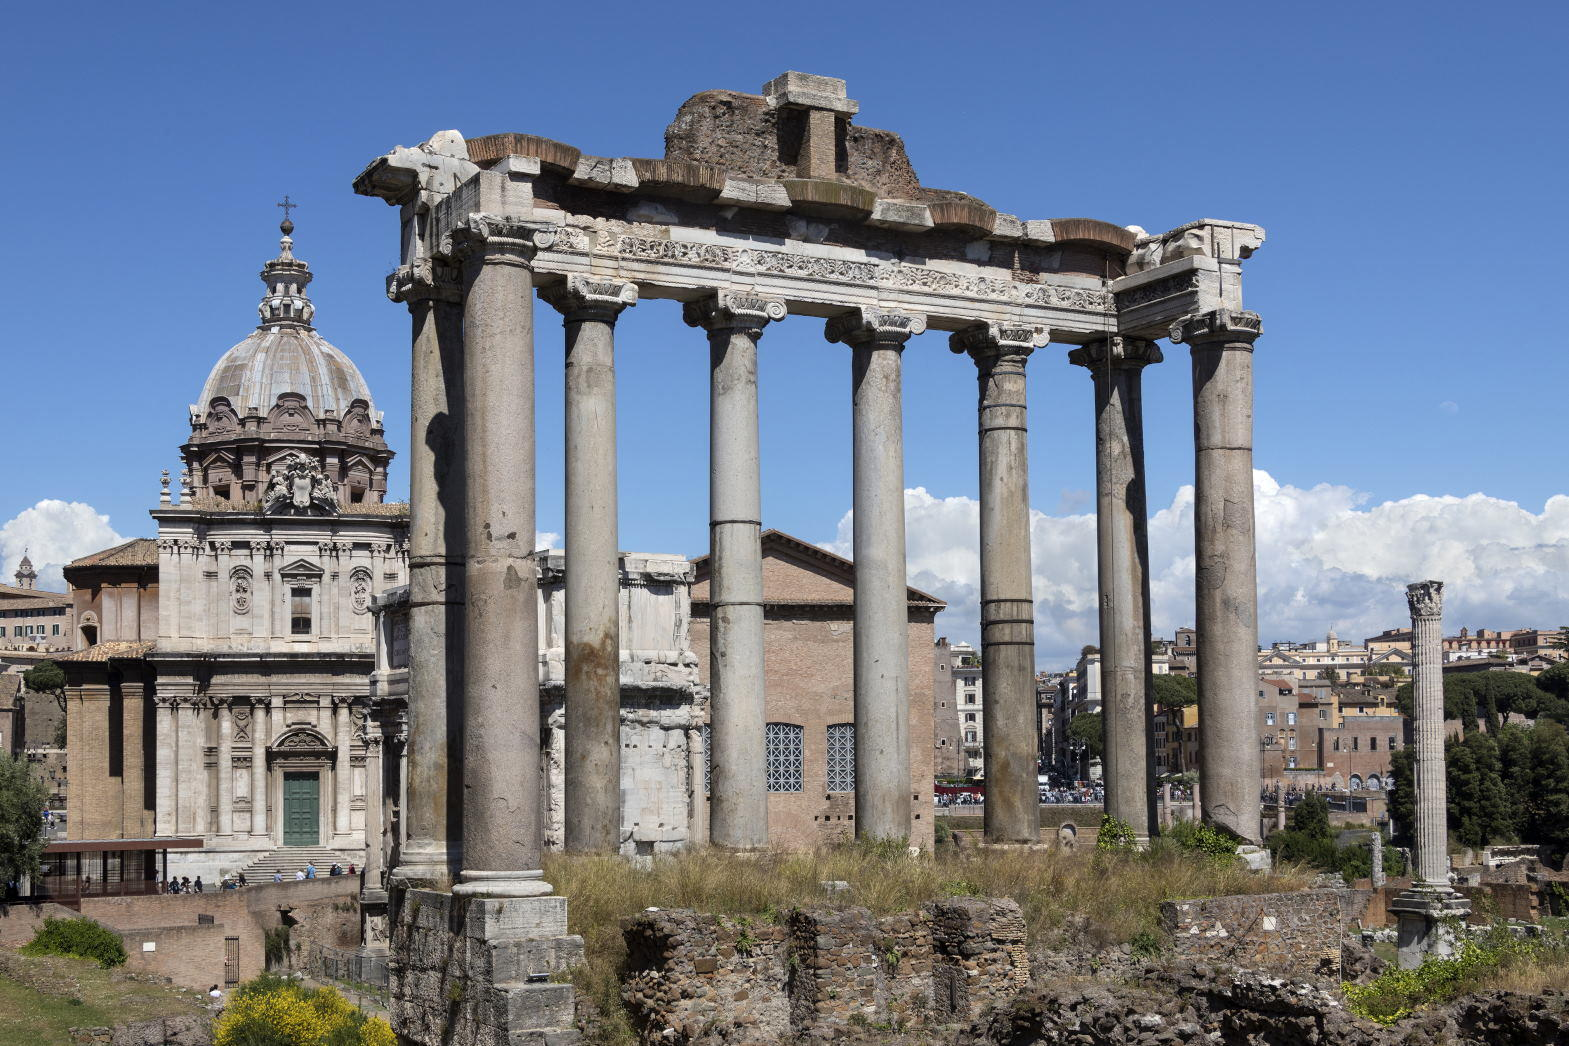 Temple of Saturn in the Roman Forum in the city of Rome, Italy. Gradual collapse over the centuries has left nothing but the front portico standing.